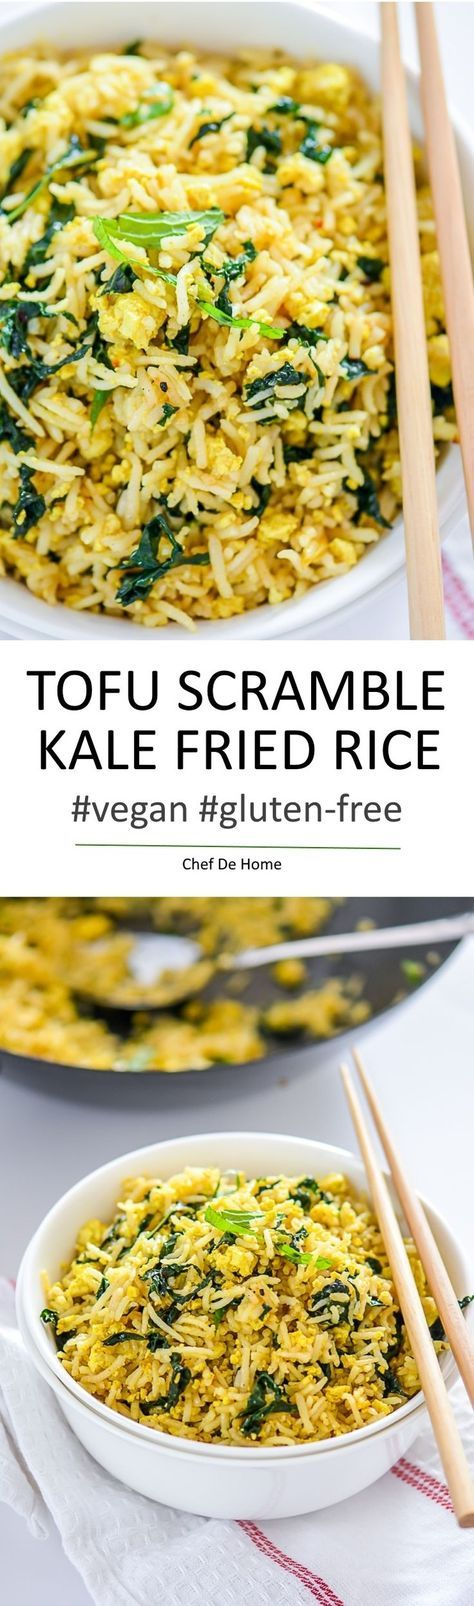 Vegan Tofu Scramble Kale Fried Rice- Vegan kale fried rice with seasoned scrambled tofu that tastes like Asian egg fried rice.. only healthier!